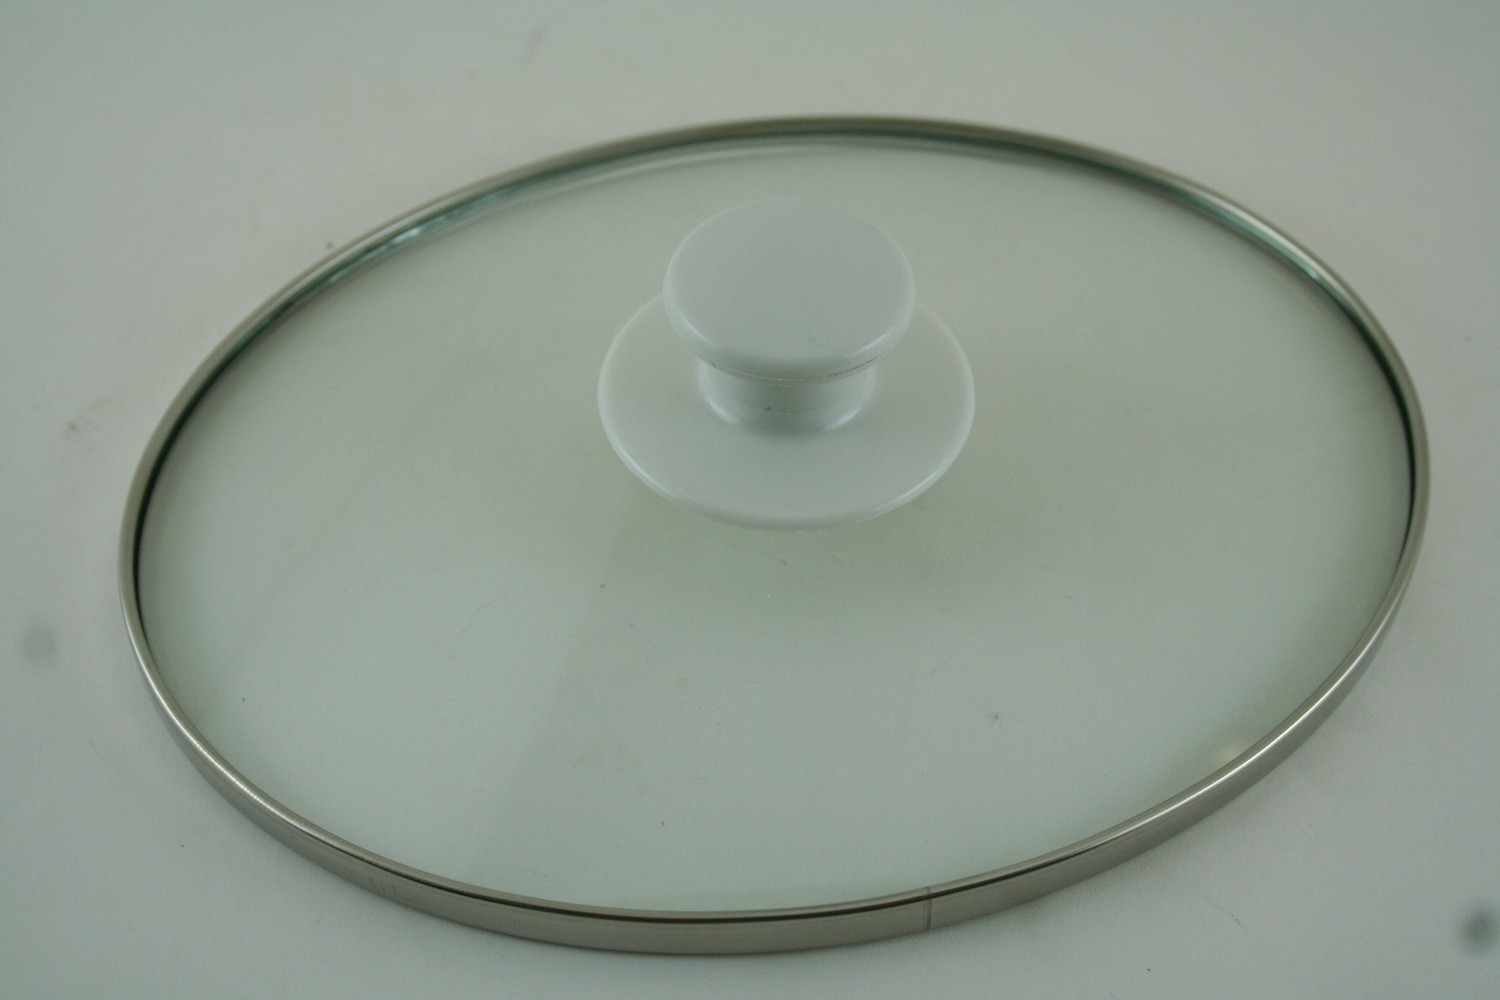 Lid-Oval, Glass w/white handle